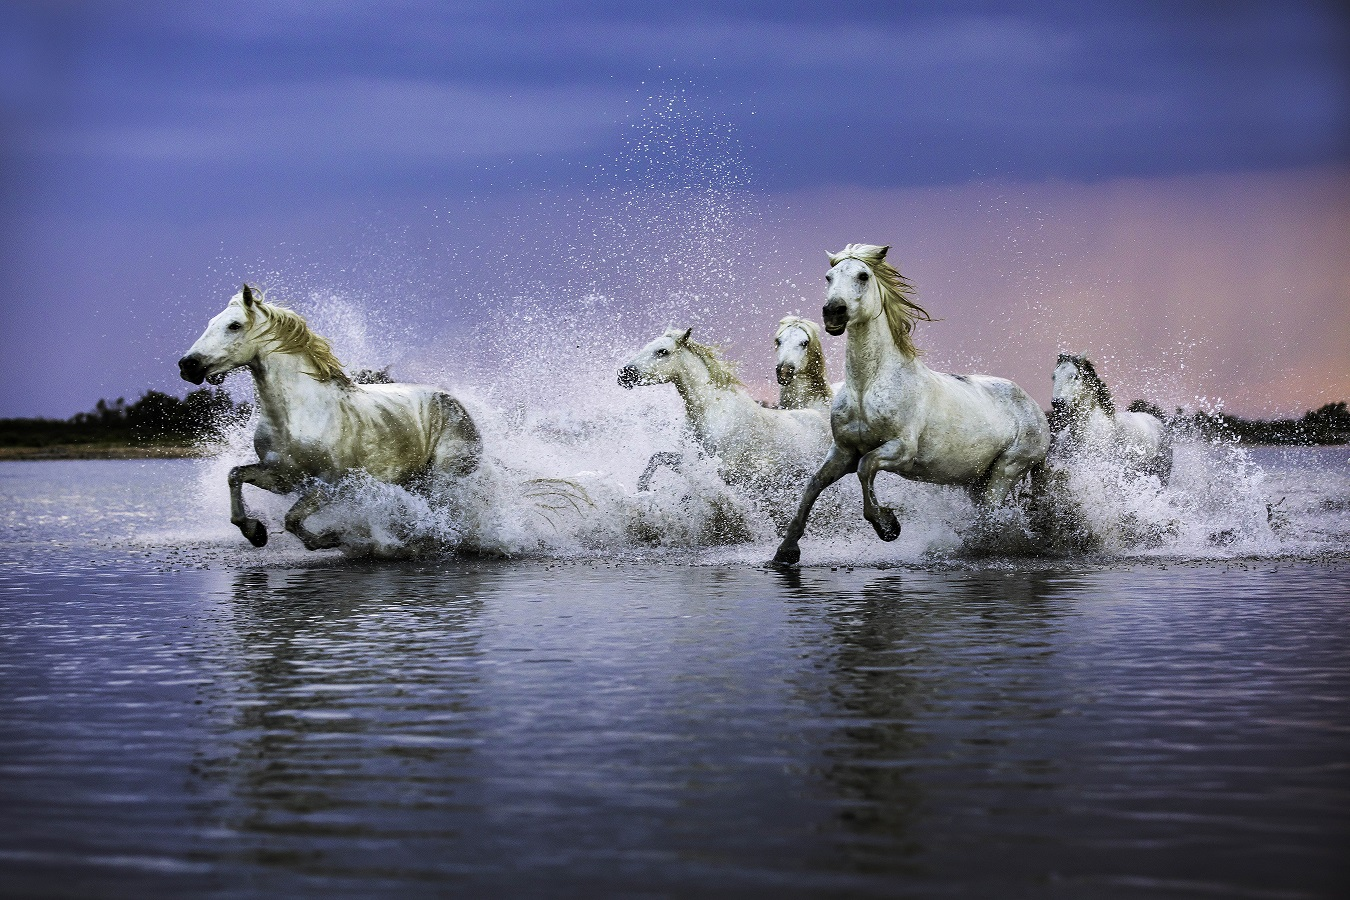 Horses of the Sea, 2018 Photography, 24 x 36 inches, $975